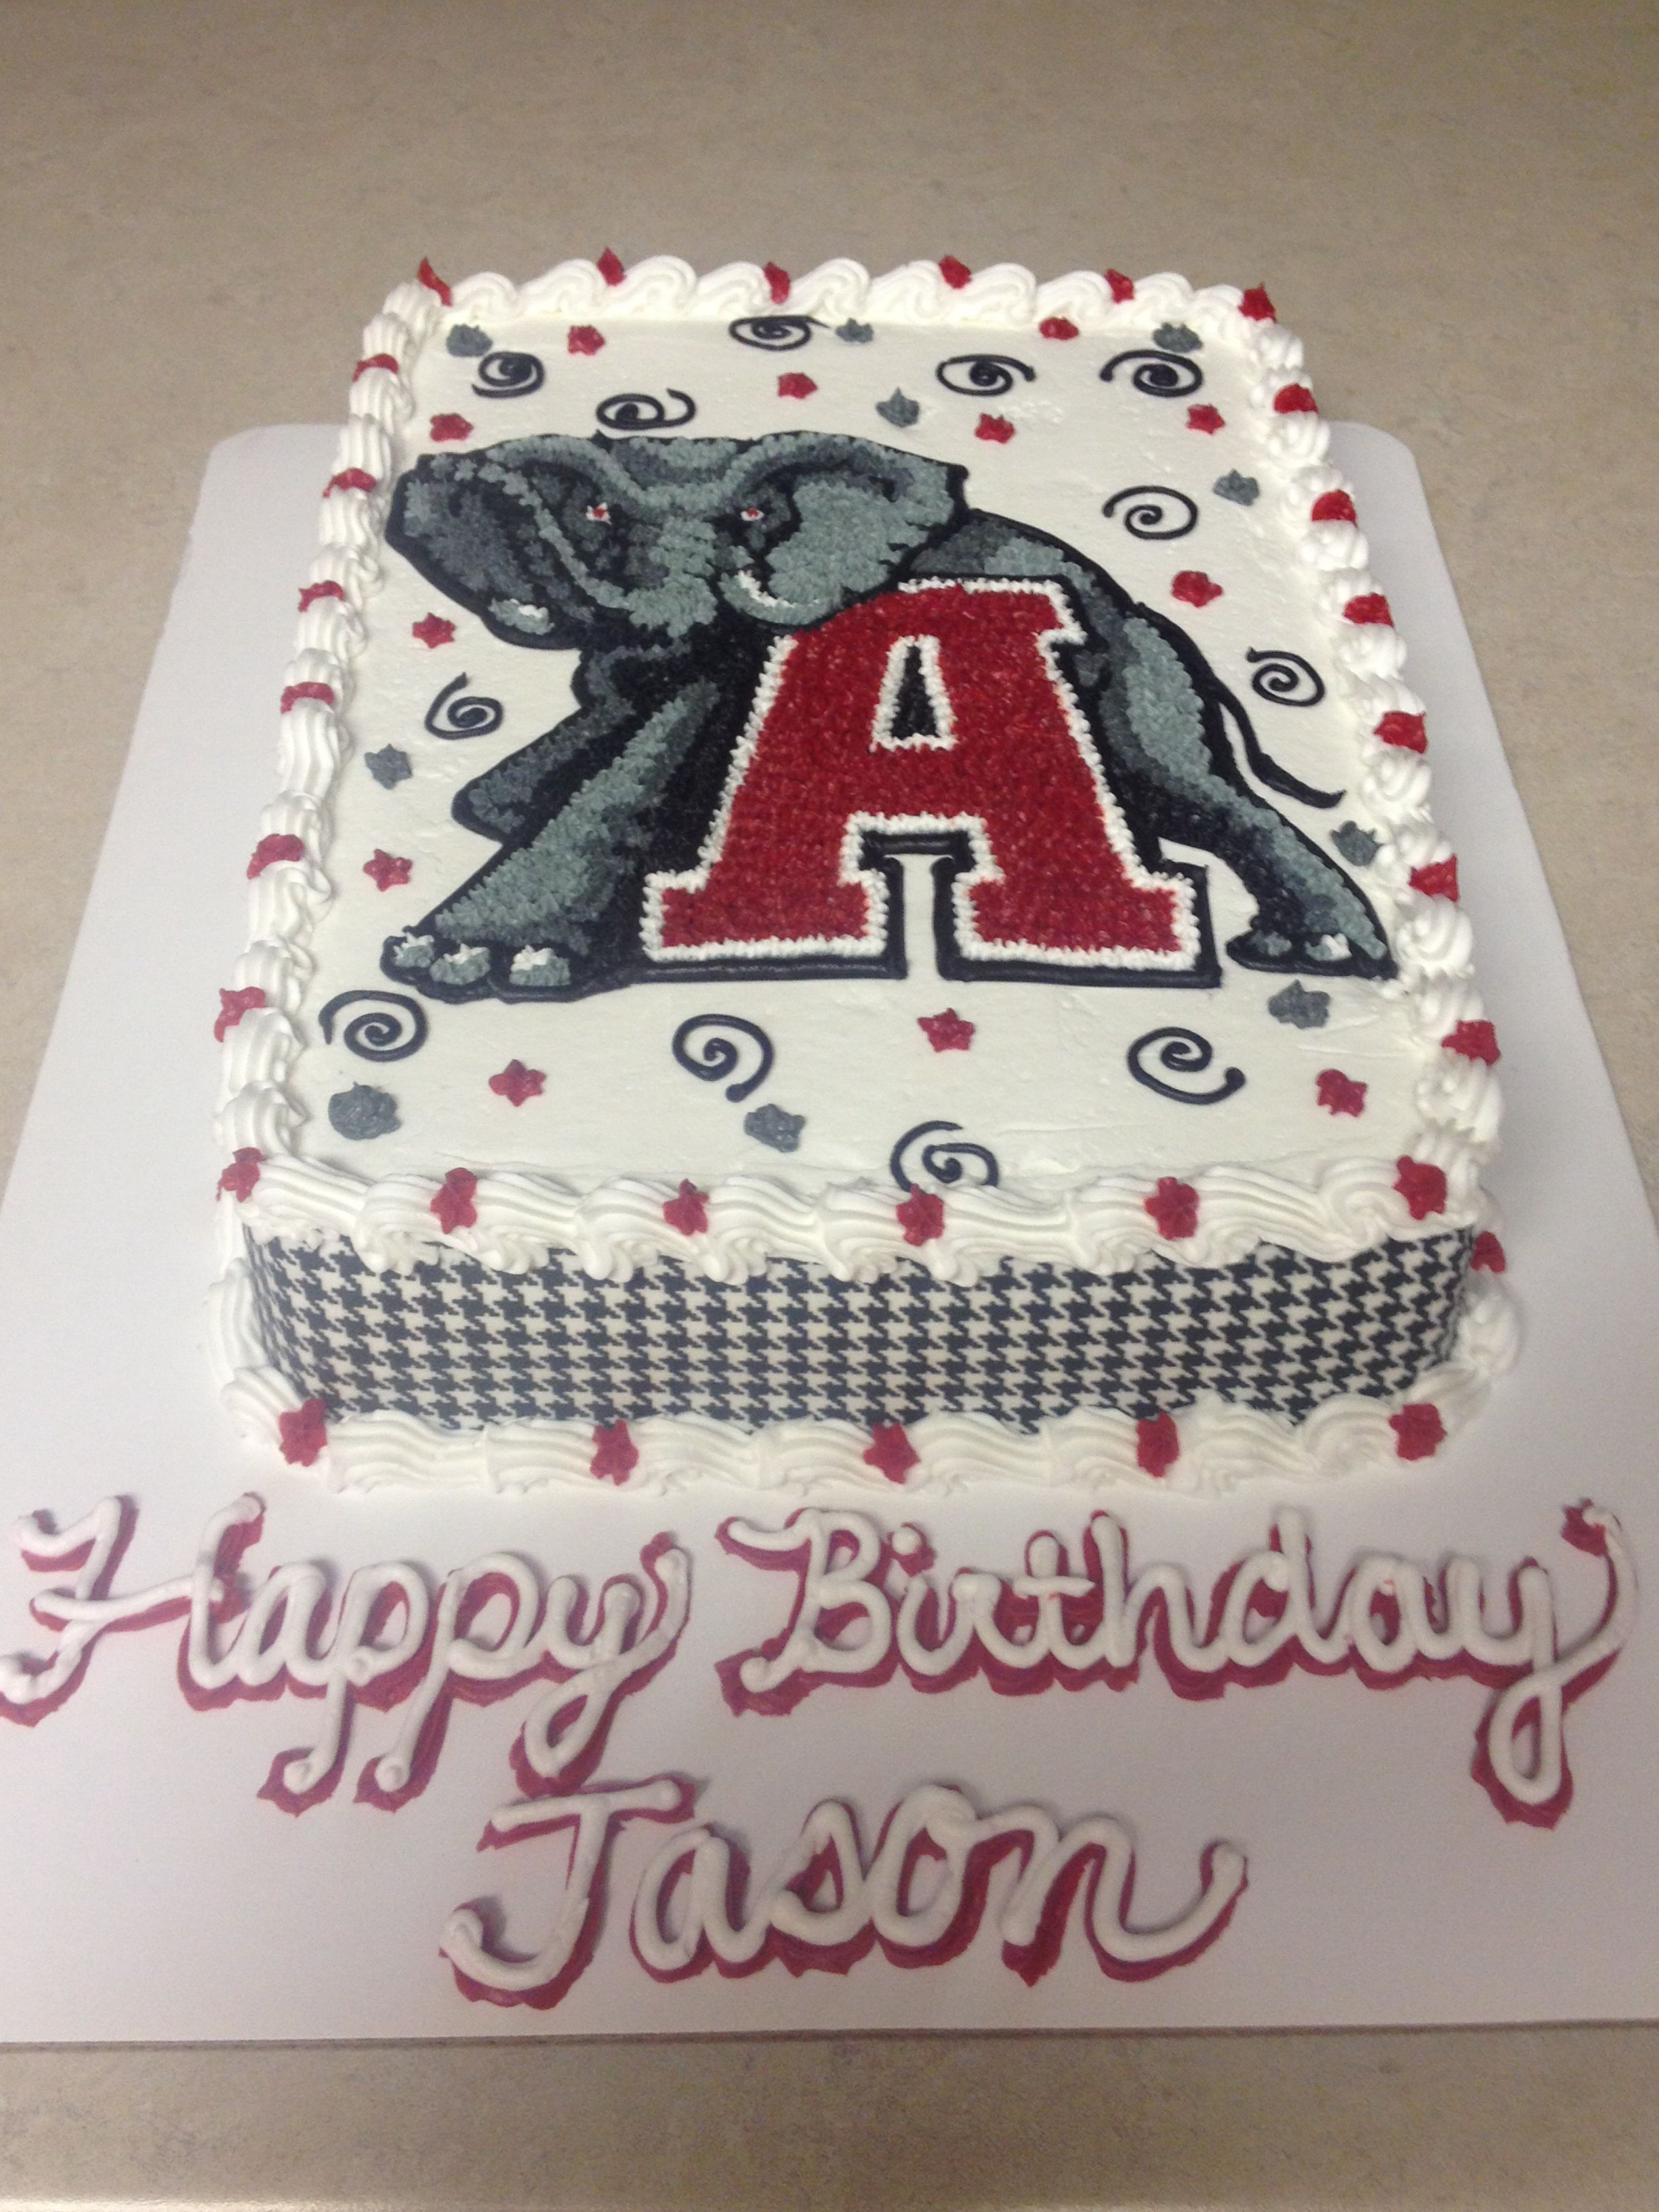 Alabama birthday cake for Jason The Cheeky Chic Cakery Pinterest